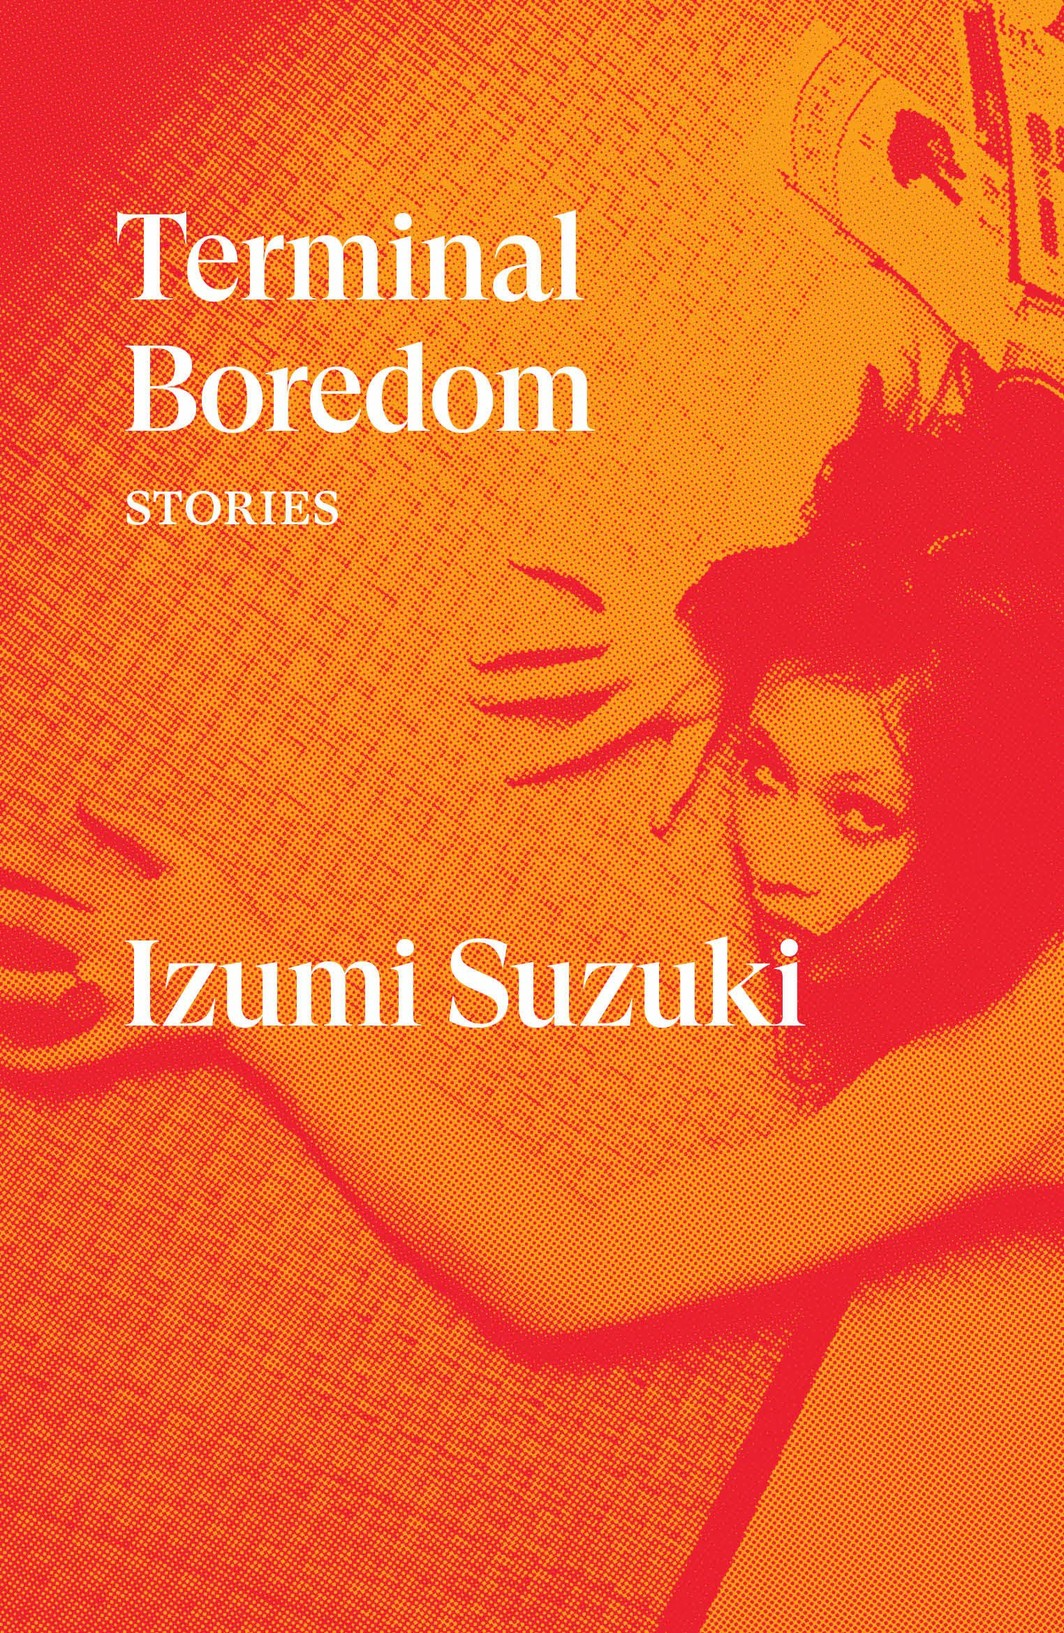 The cover of Terminal Boredom: Stories